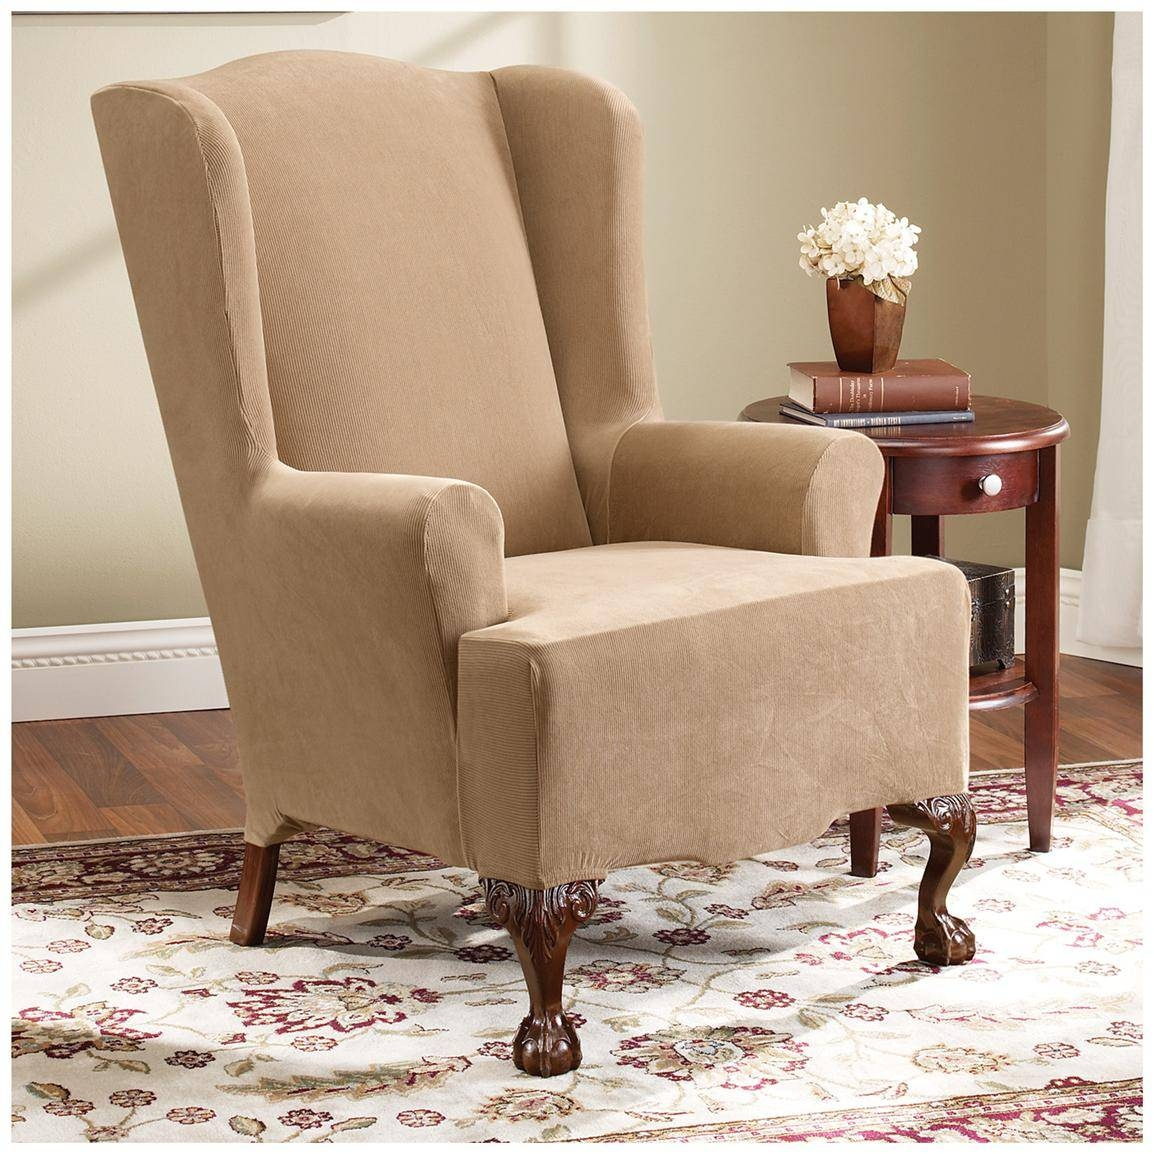 Decor: Target Chair Slipcovers | Wingback Chair Covers | White intended for Sofa and Chair Slipcovers (Image 5 of 15)